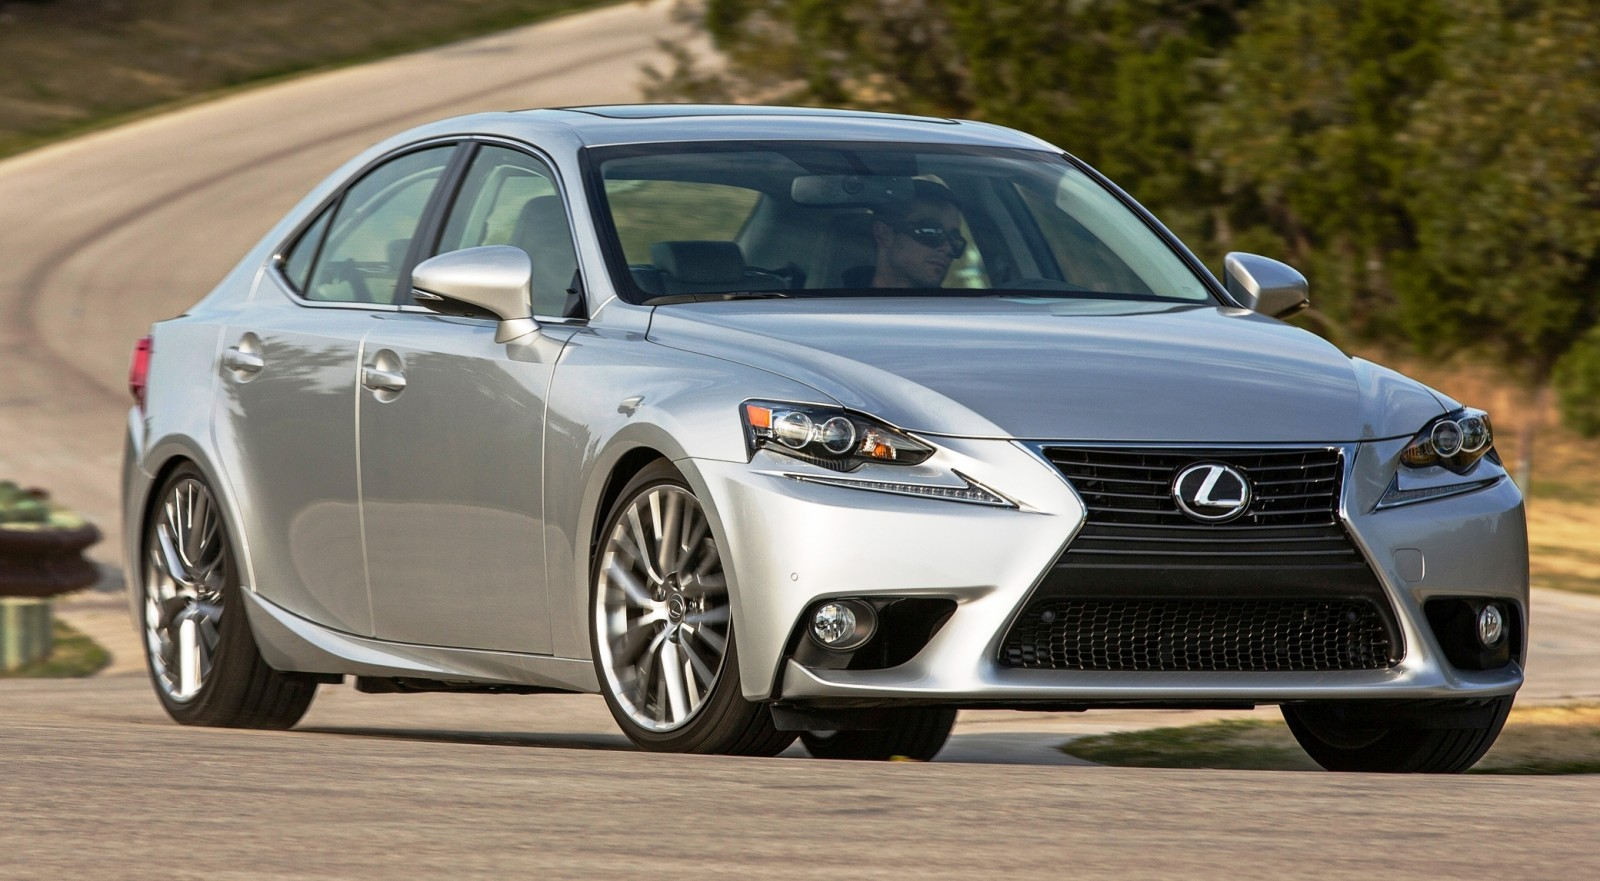 2014_Lexus_IS_250_020